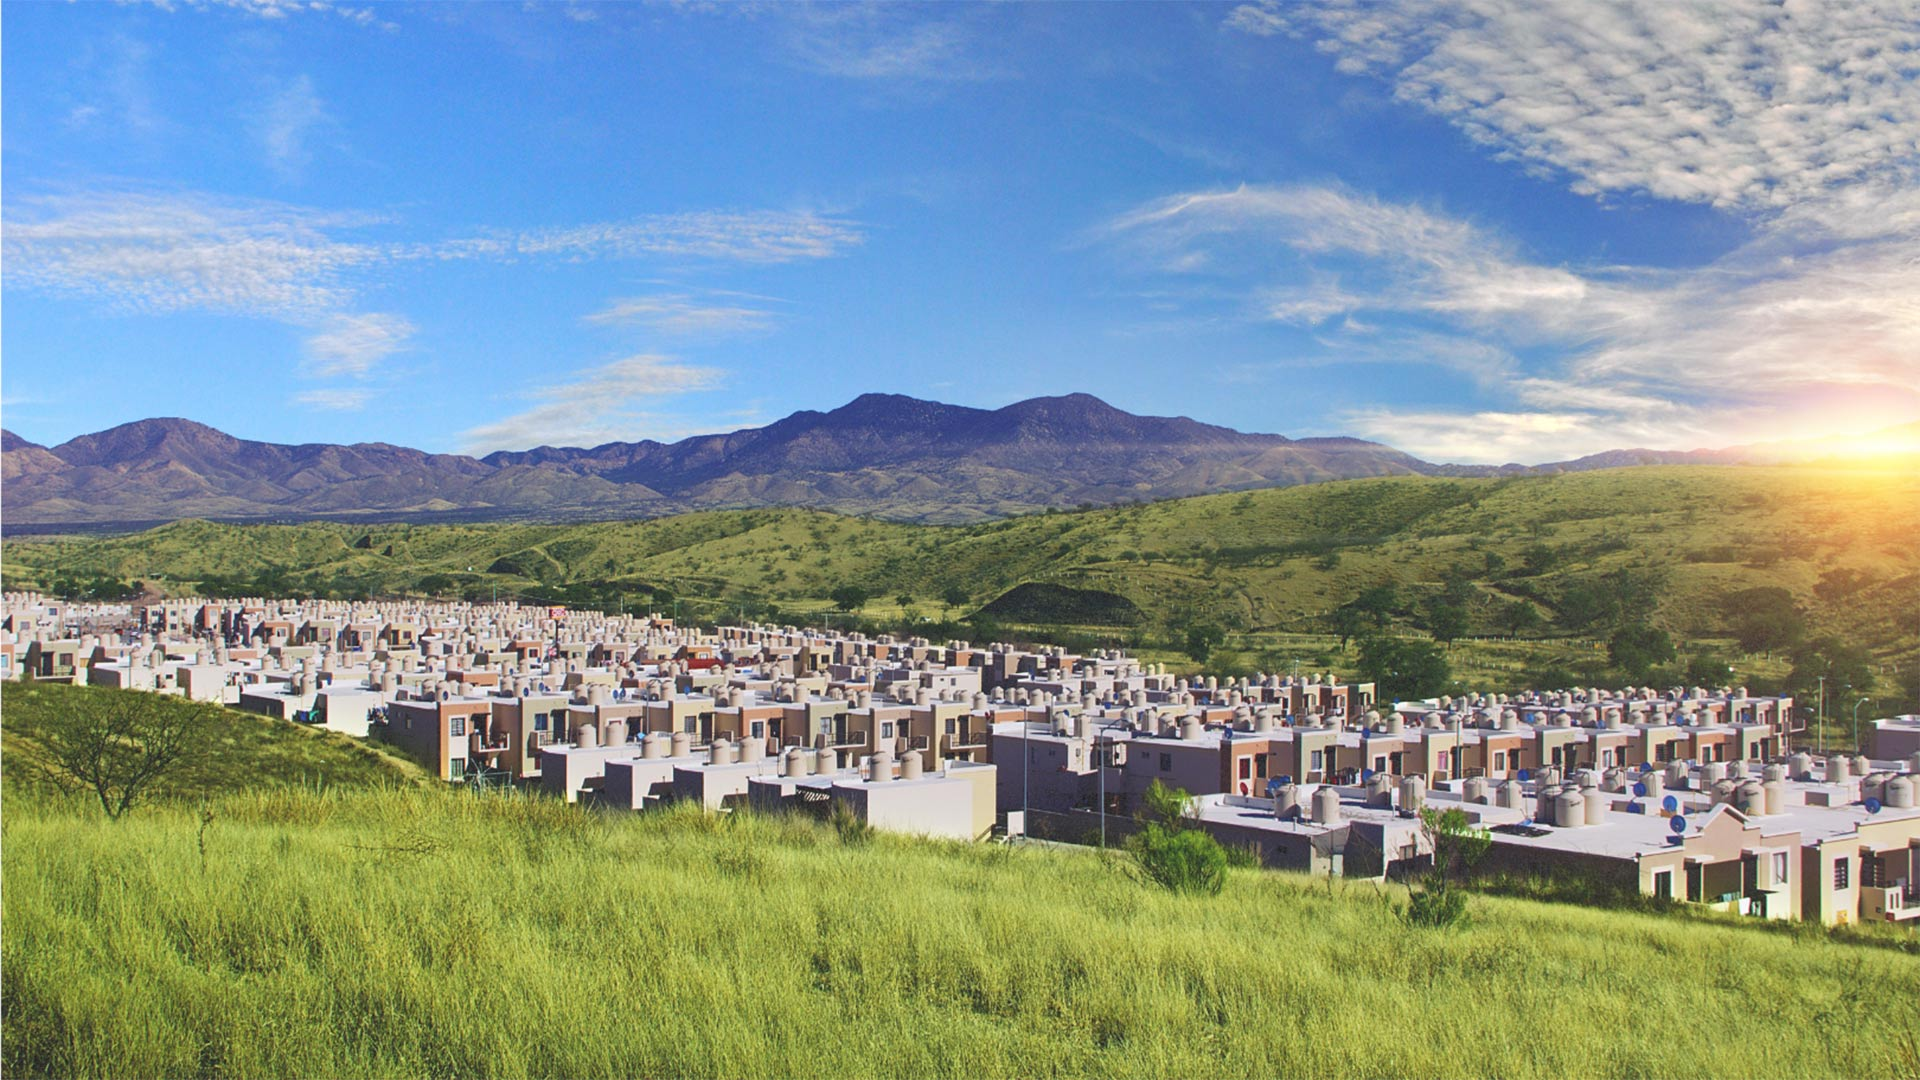 Nogales NEW HOUSING Development